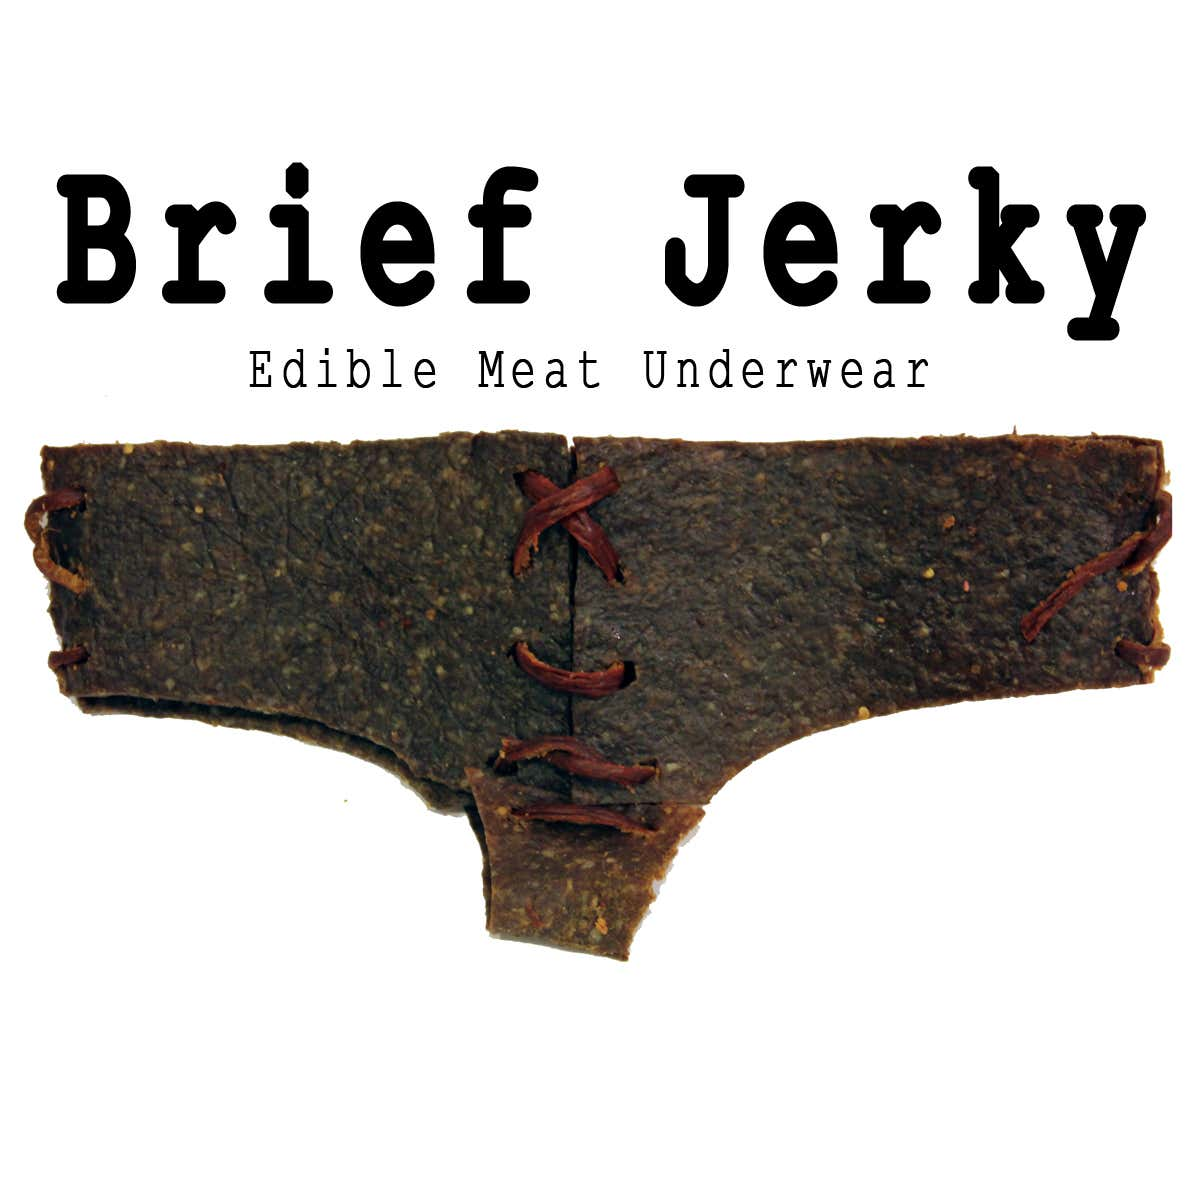 Eddible panties